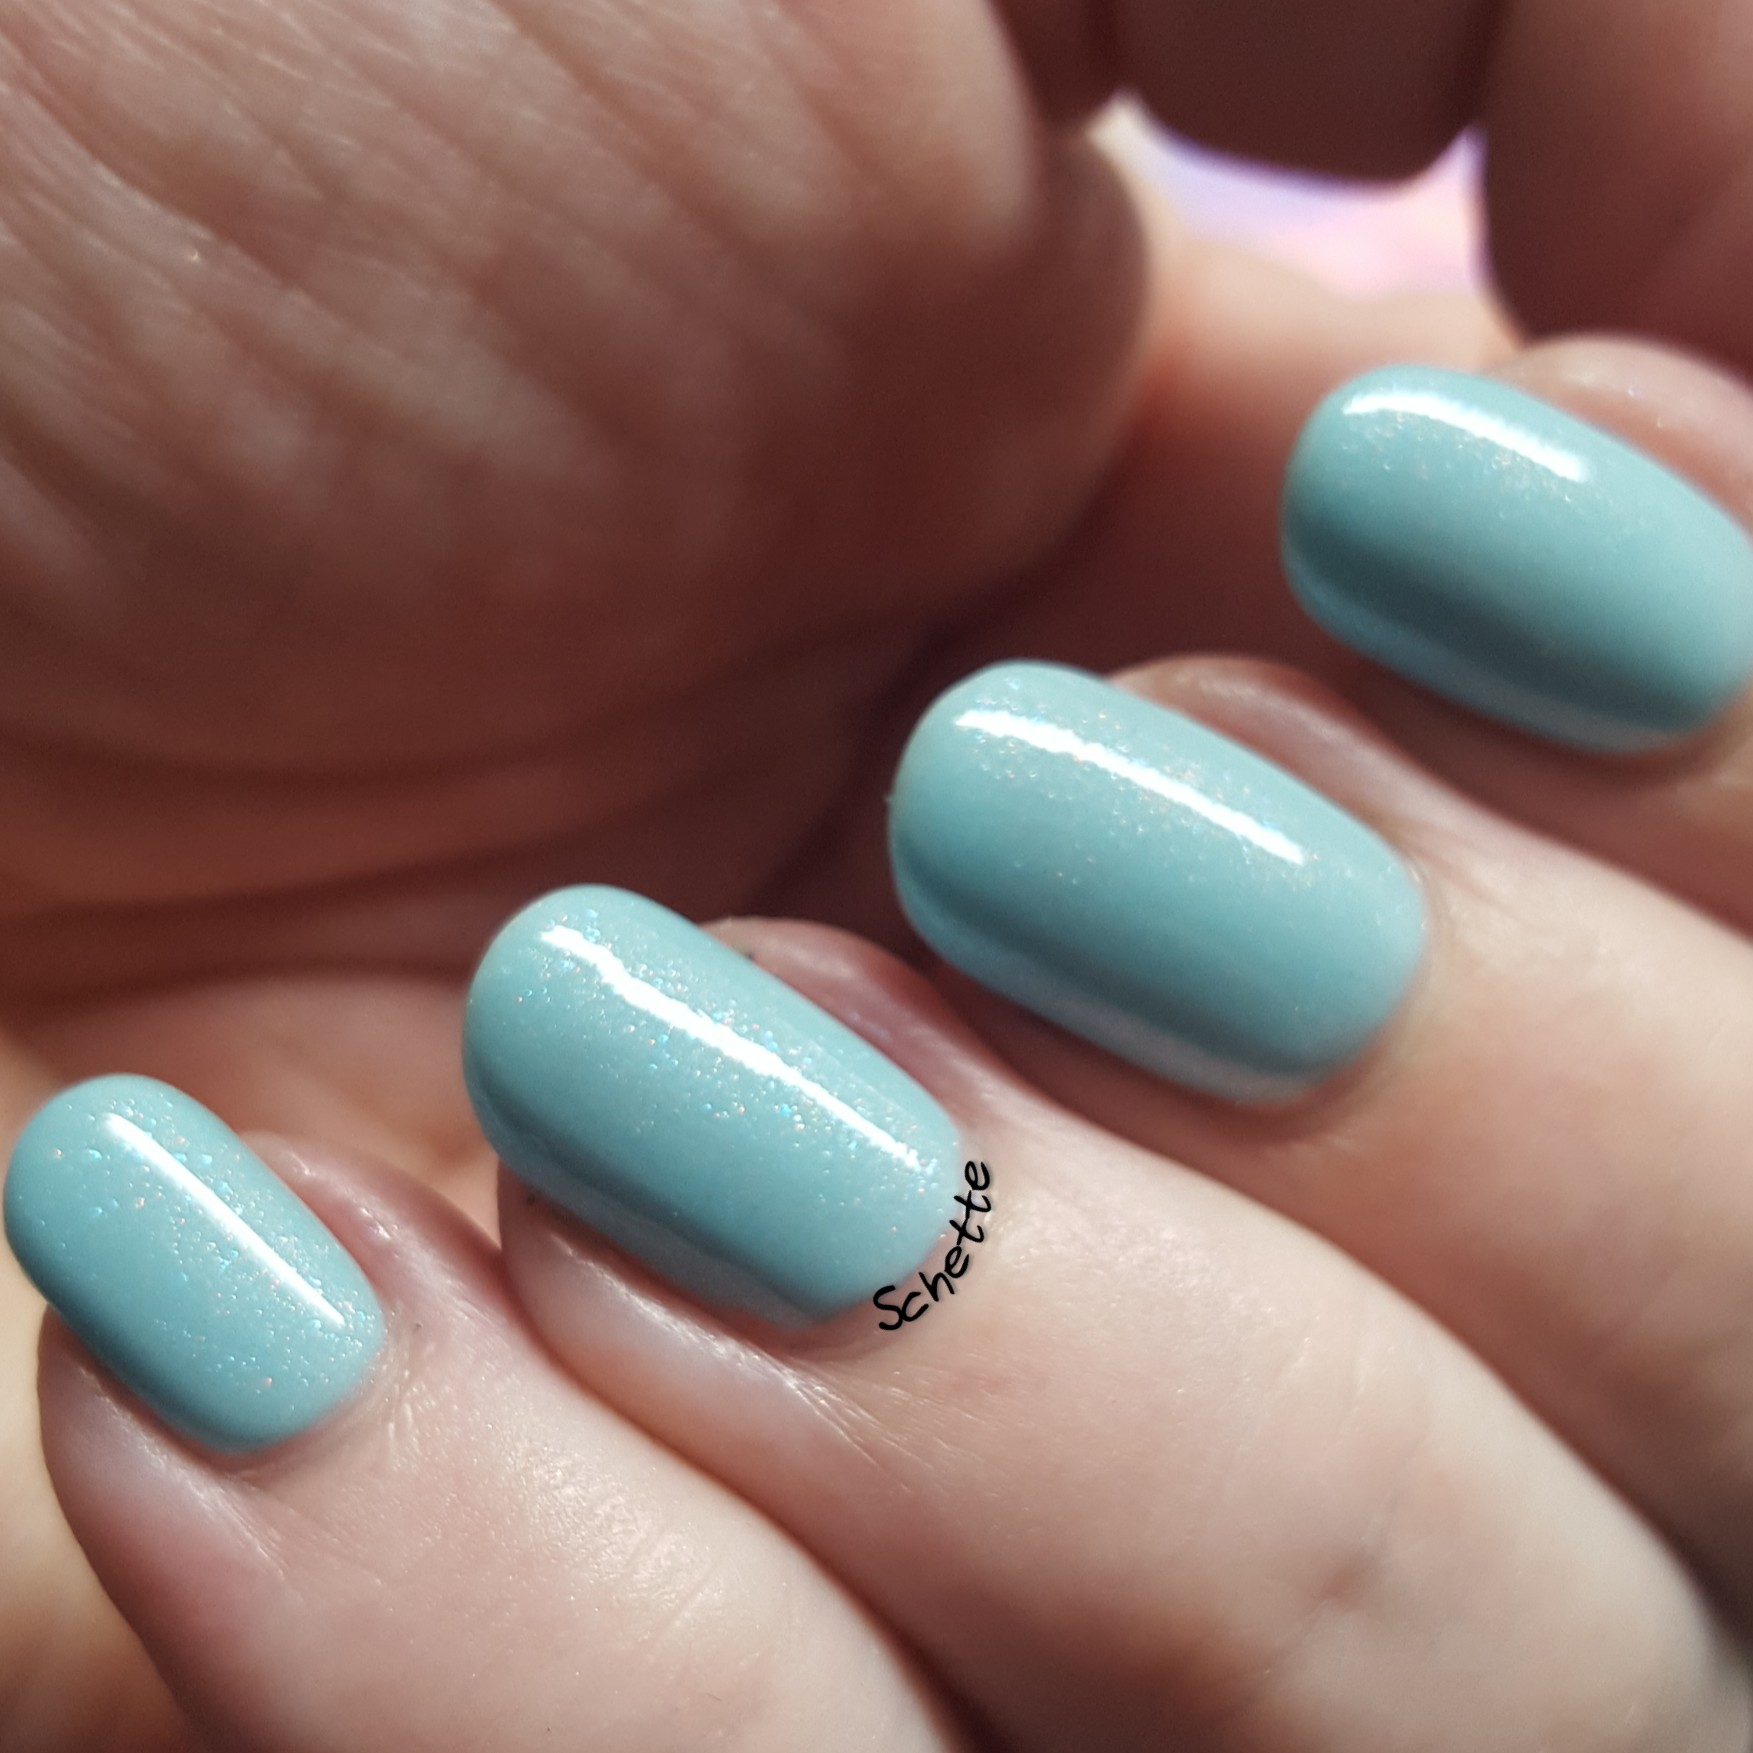 Enchanted Polish - Fly